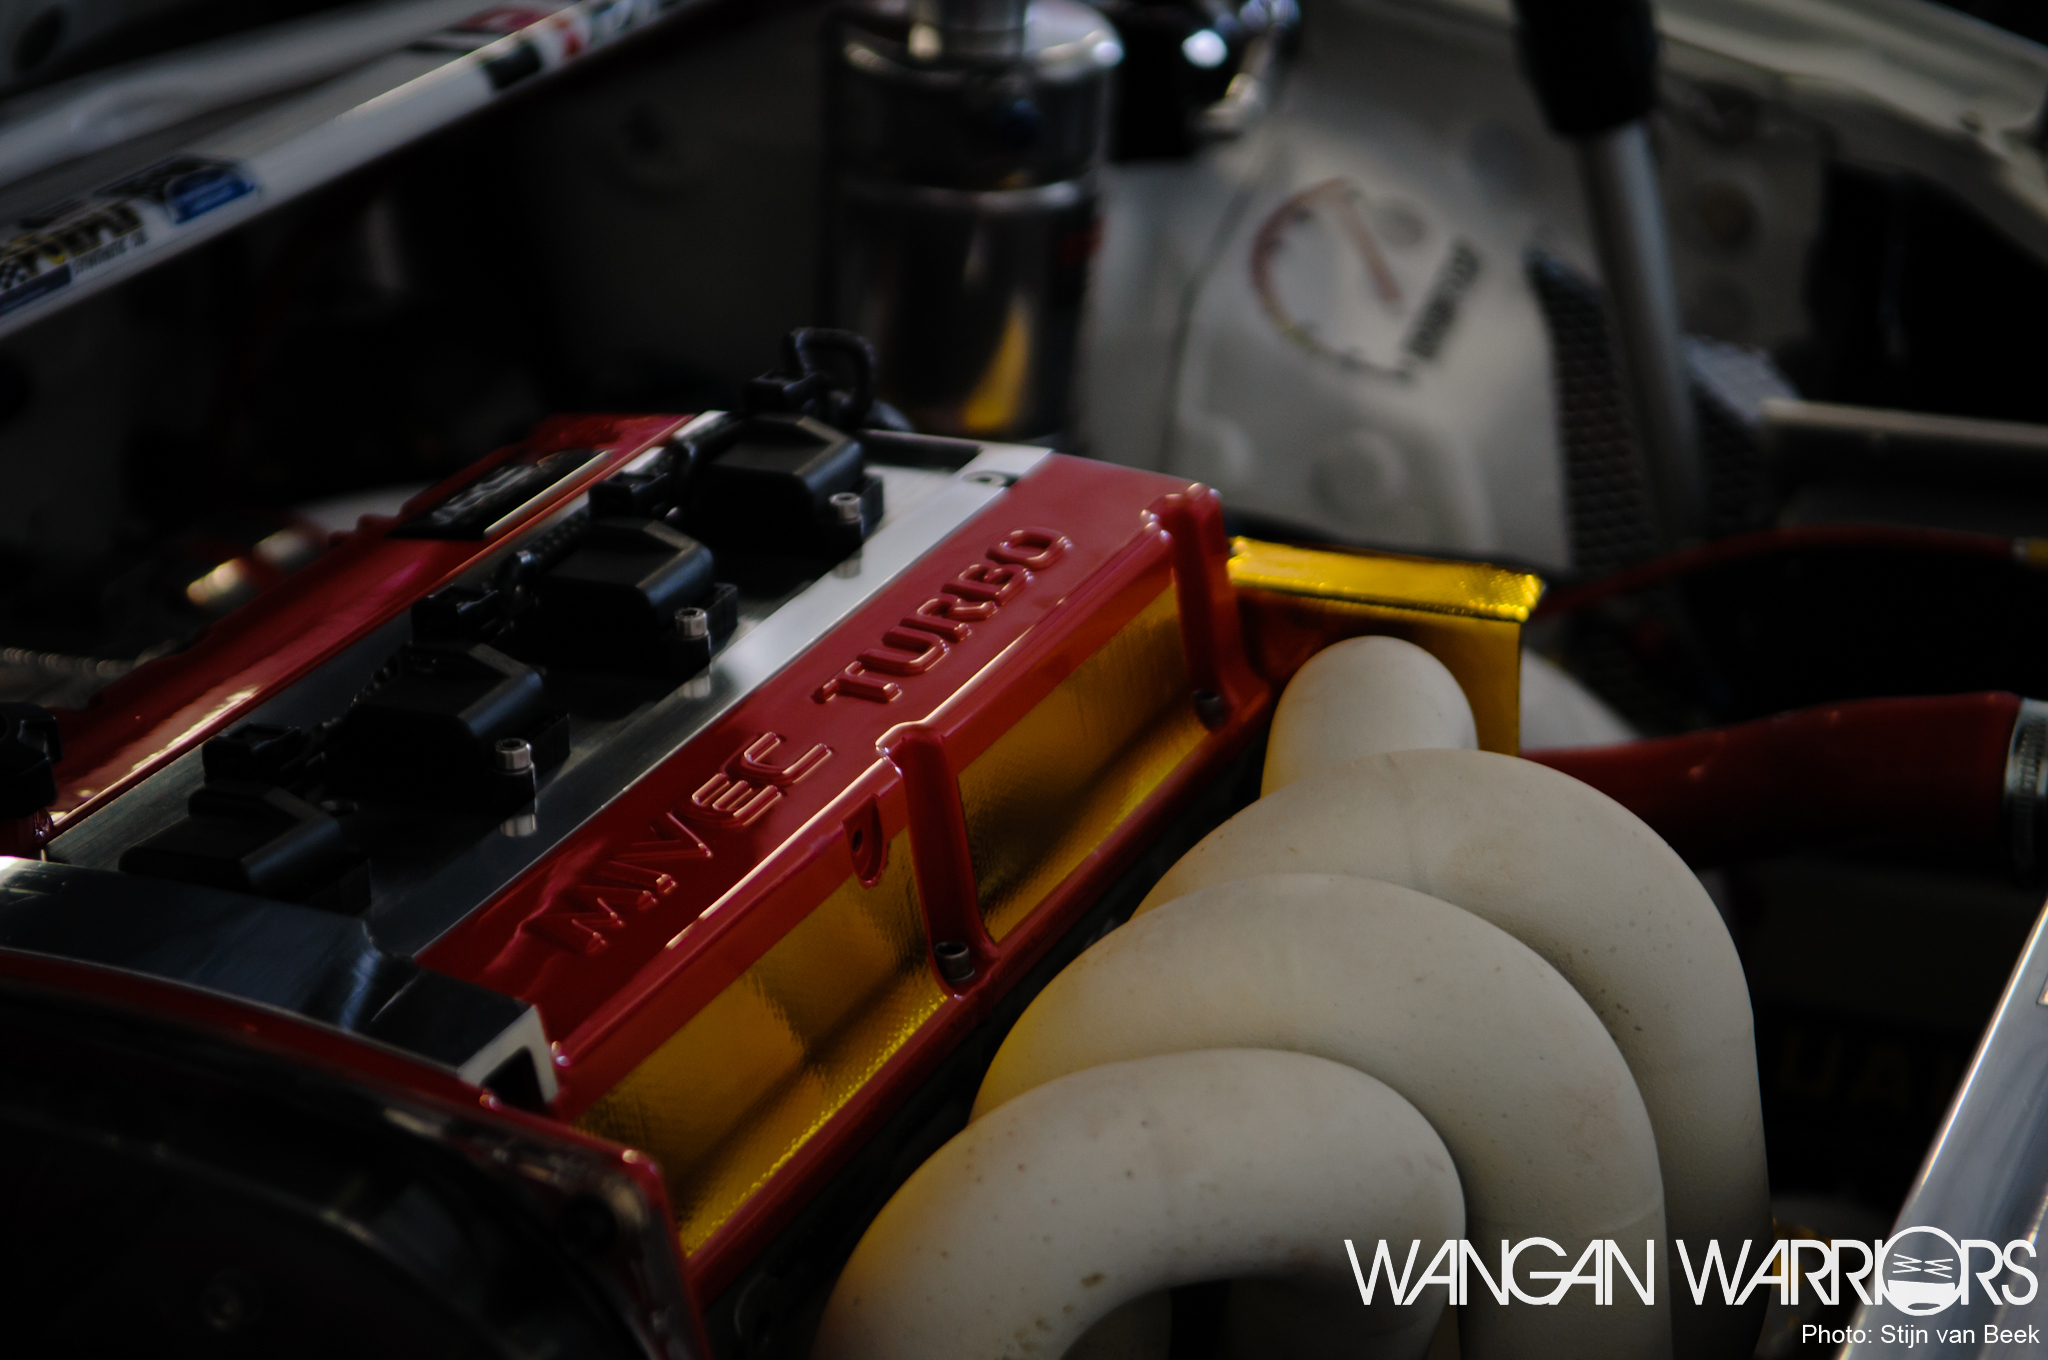 Not the prettiest Evo you've seen - Wangan Warriors